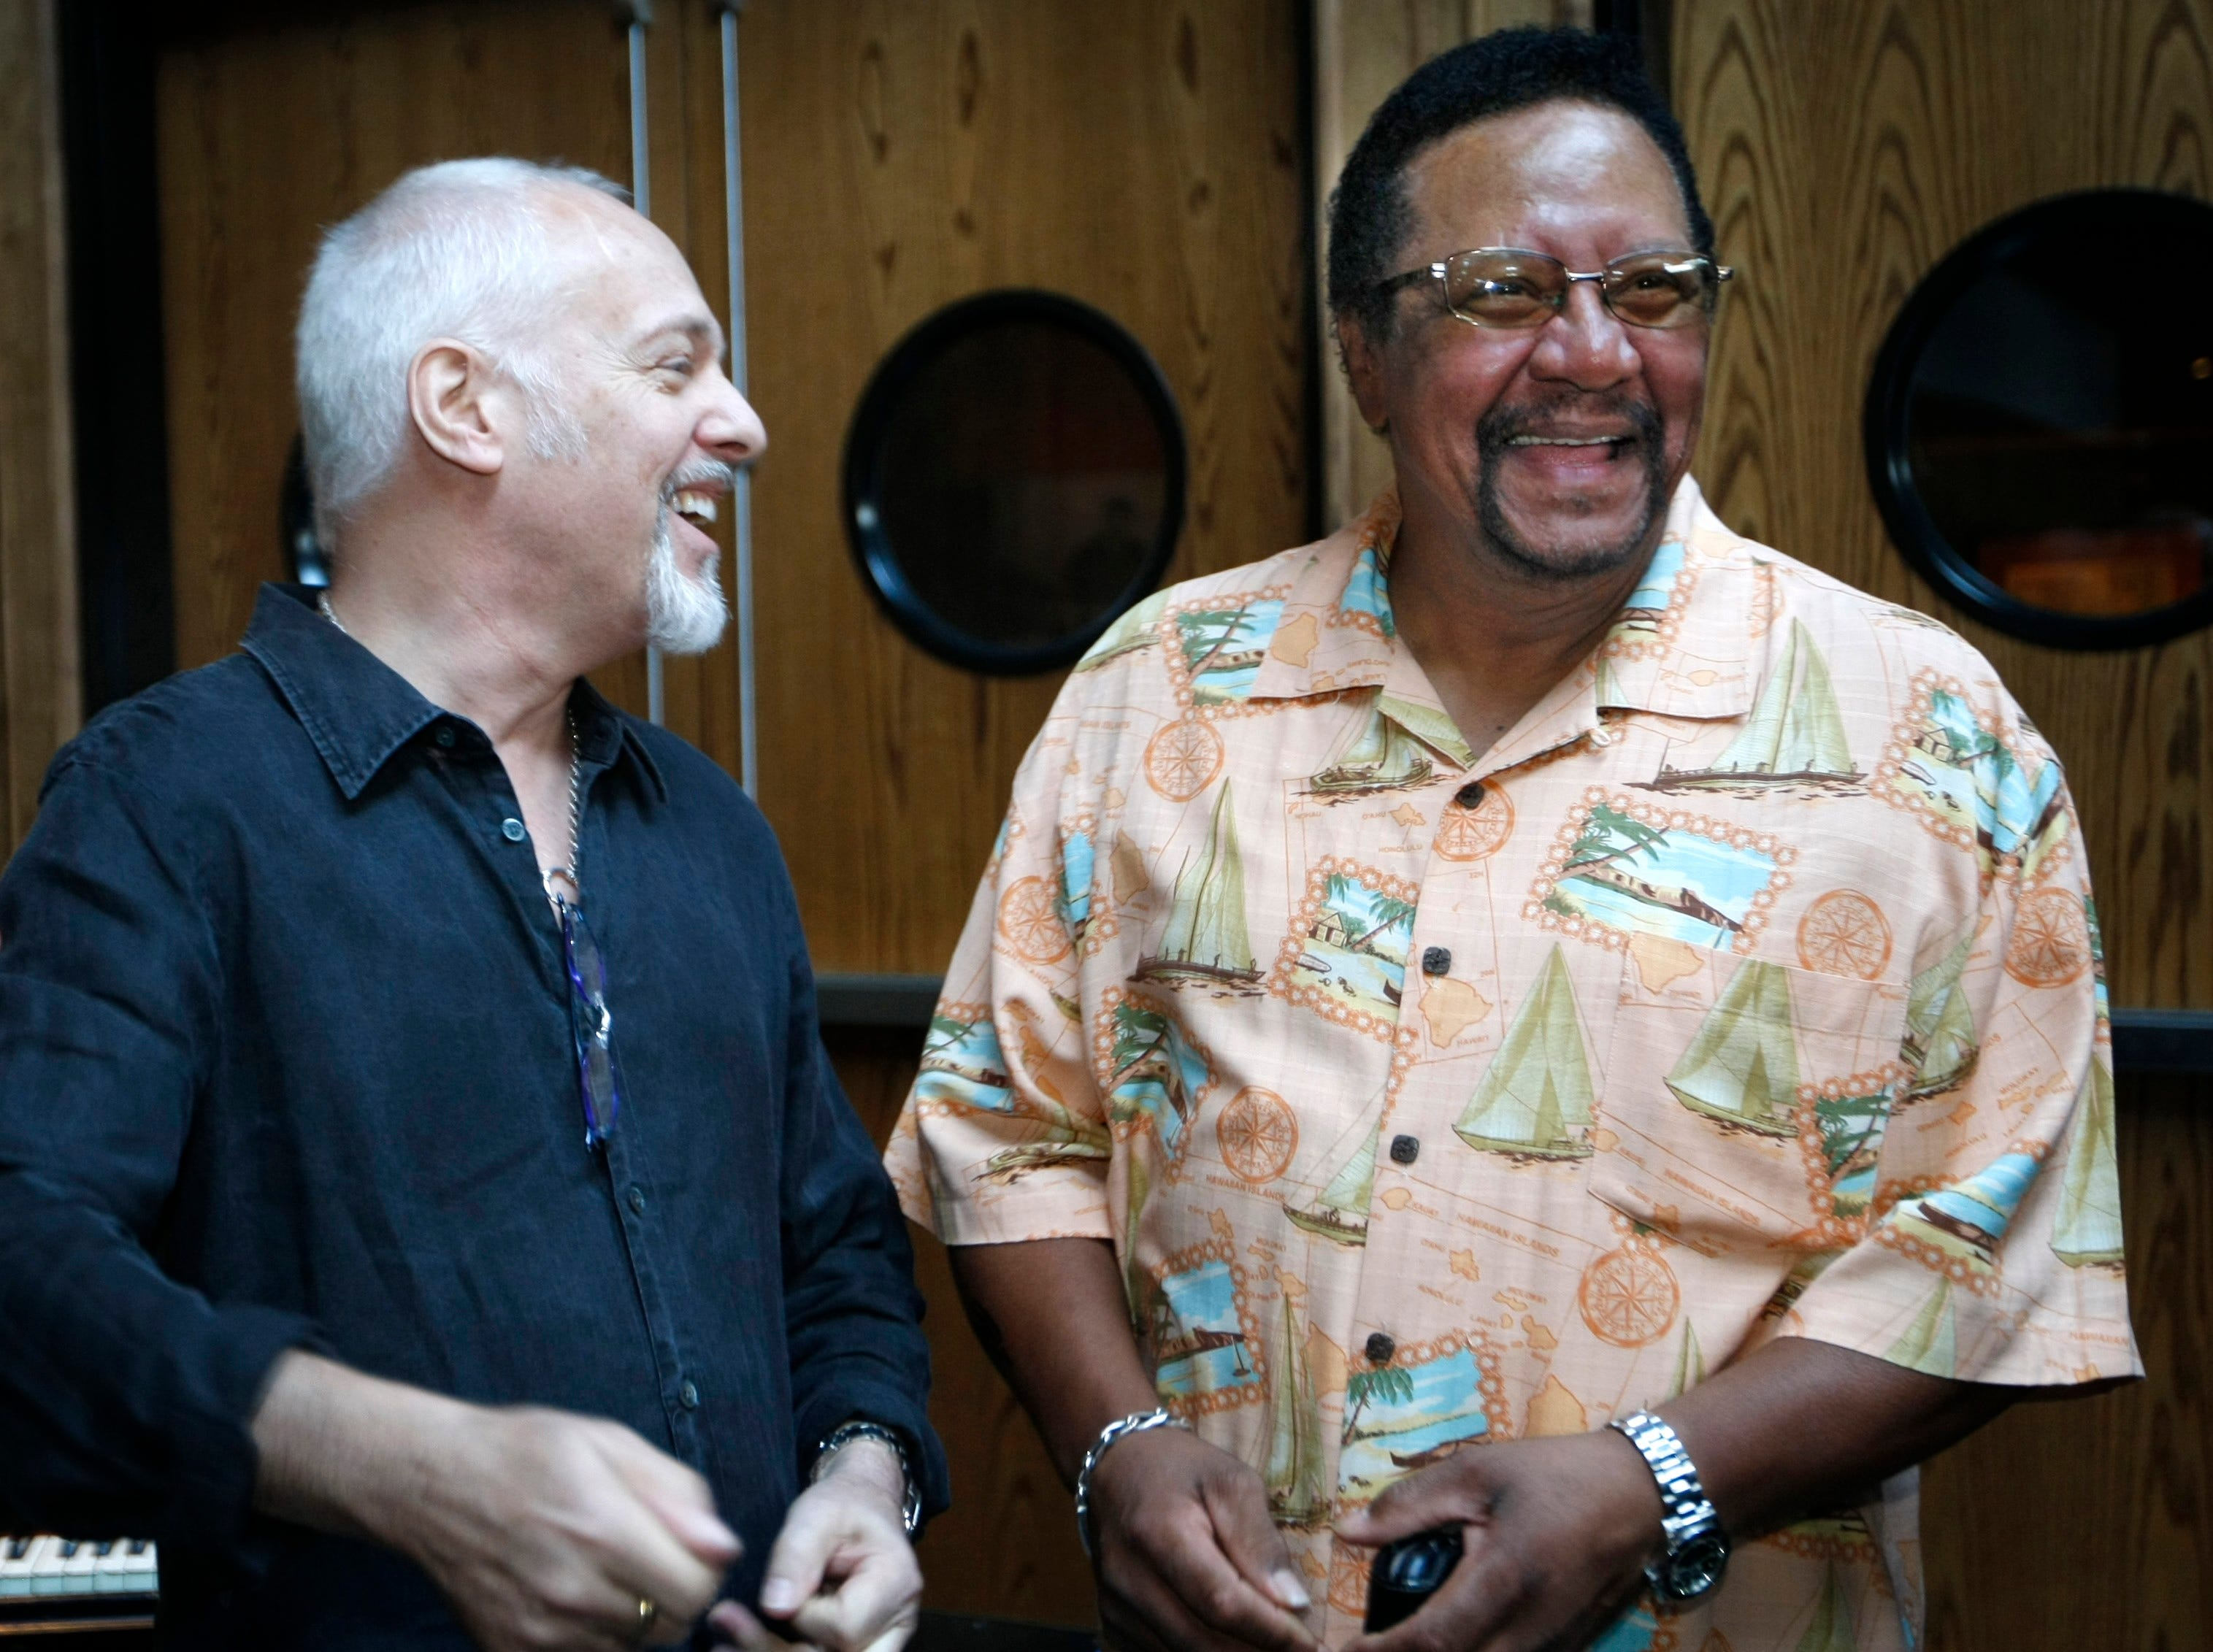 ** ADDS LOCATION ** Recording artists Peter Frampton, left, and Billy Cox are shown at the Musicians Hall of Fame in Nashville, Tuesday, July 1, 2008, at the event where the list of the new inductee class was named.  (AP Photo/The Tennessean, George Walker IV)  ORG XMIT: TNNAT201